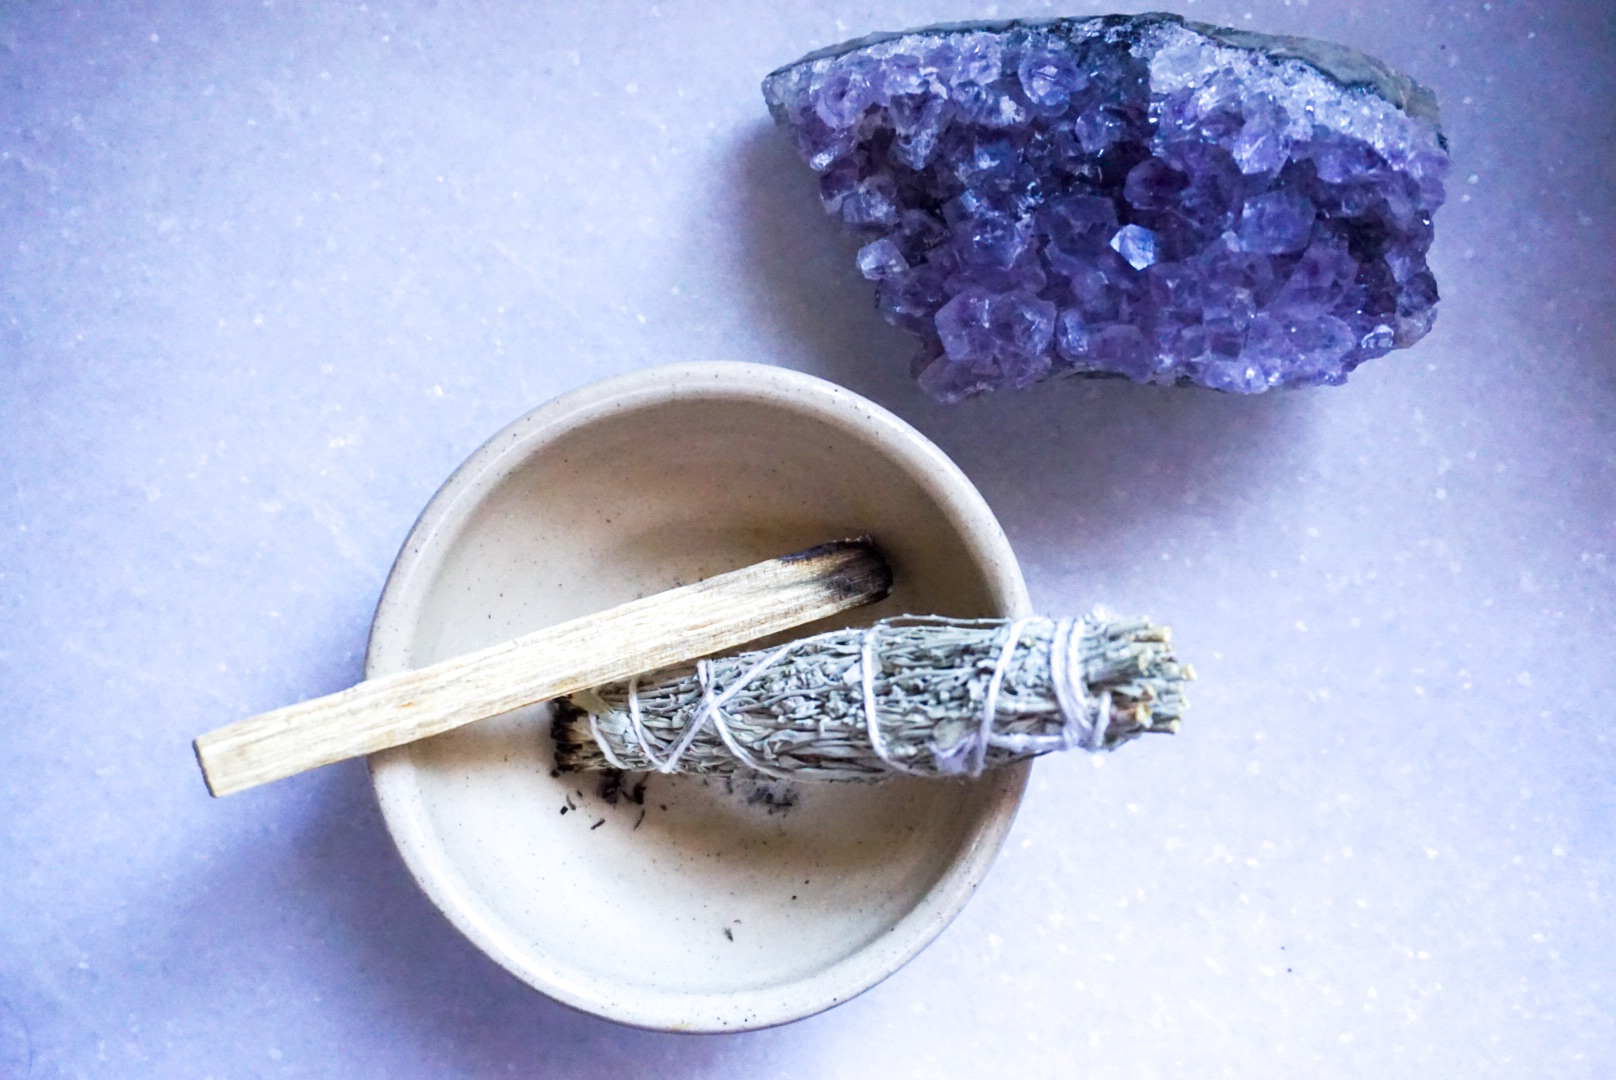 Smudging - What is it? What does it do?